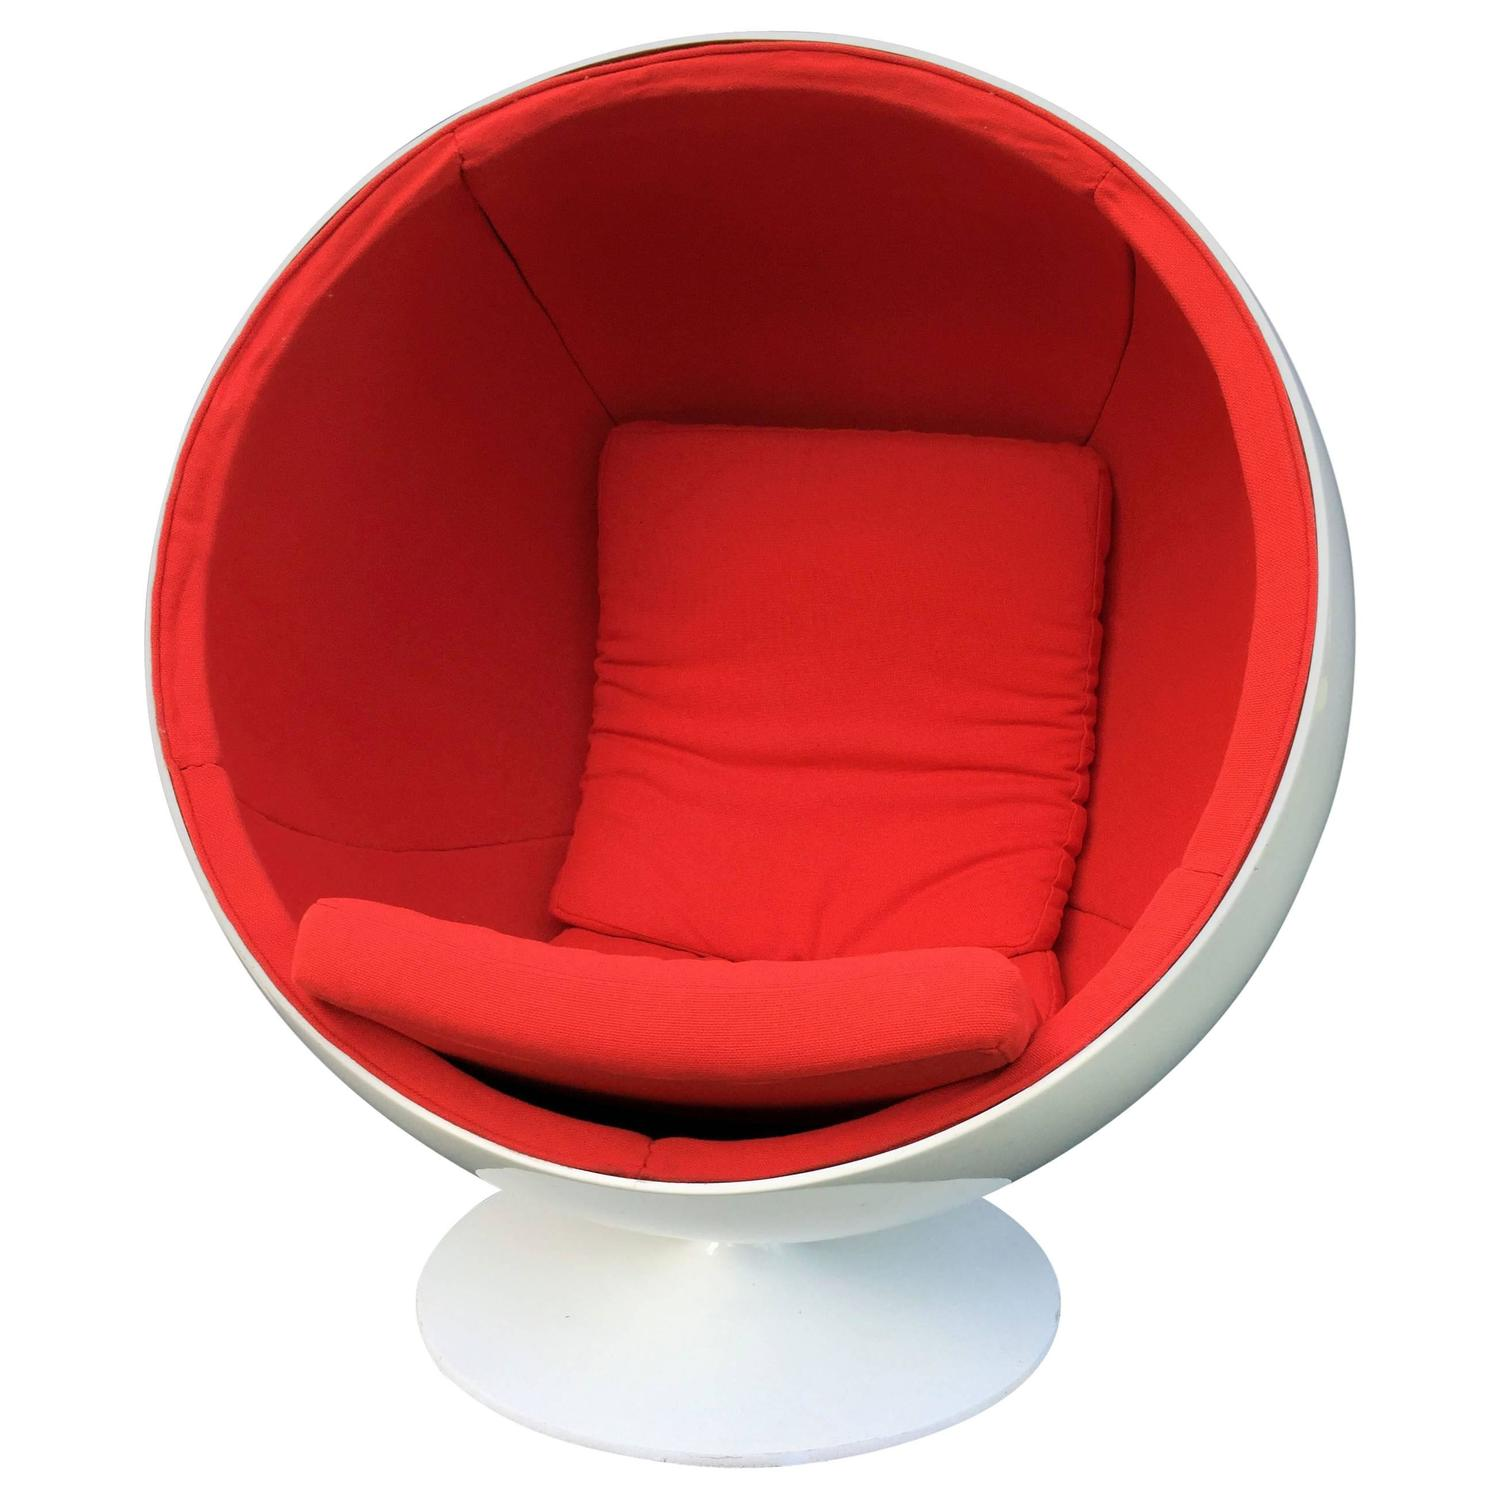 Ball or globe chair by eero aarnio for asko at 1stdibs - Ball chair by eero aarnio ...